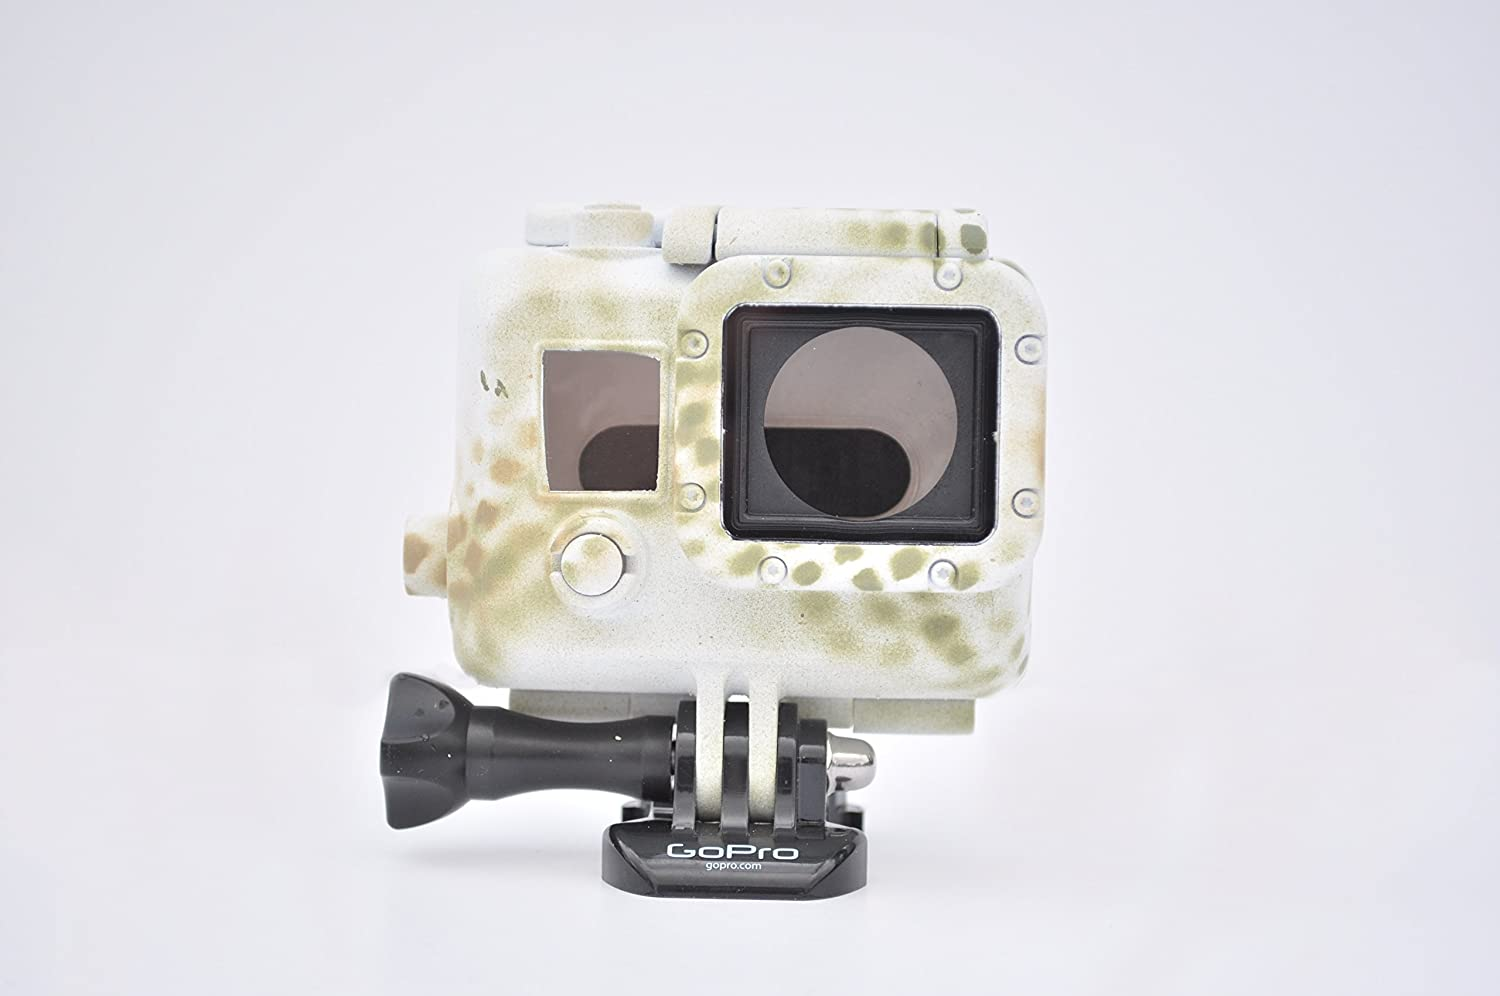 Winter Camouflage Camo Waterproof Housing for GoPro Hero 3 3+ 4 White Silver Black by StuntCams